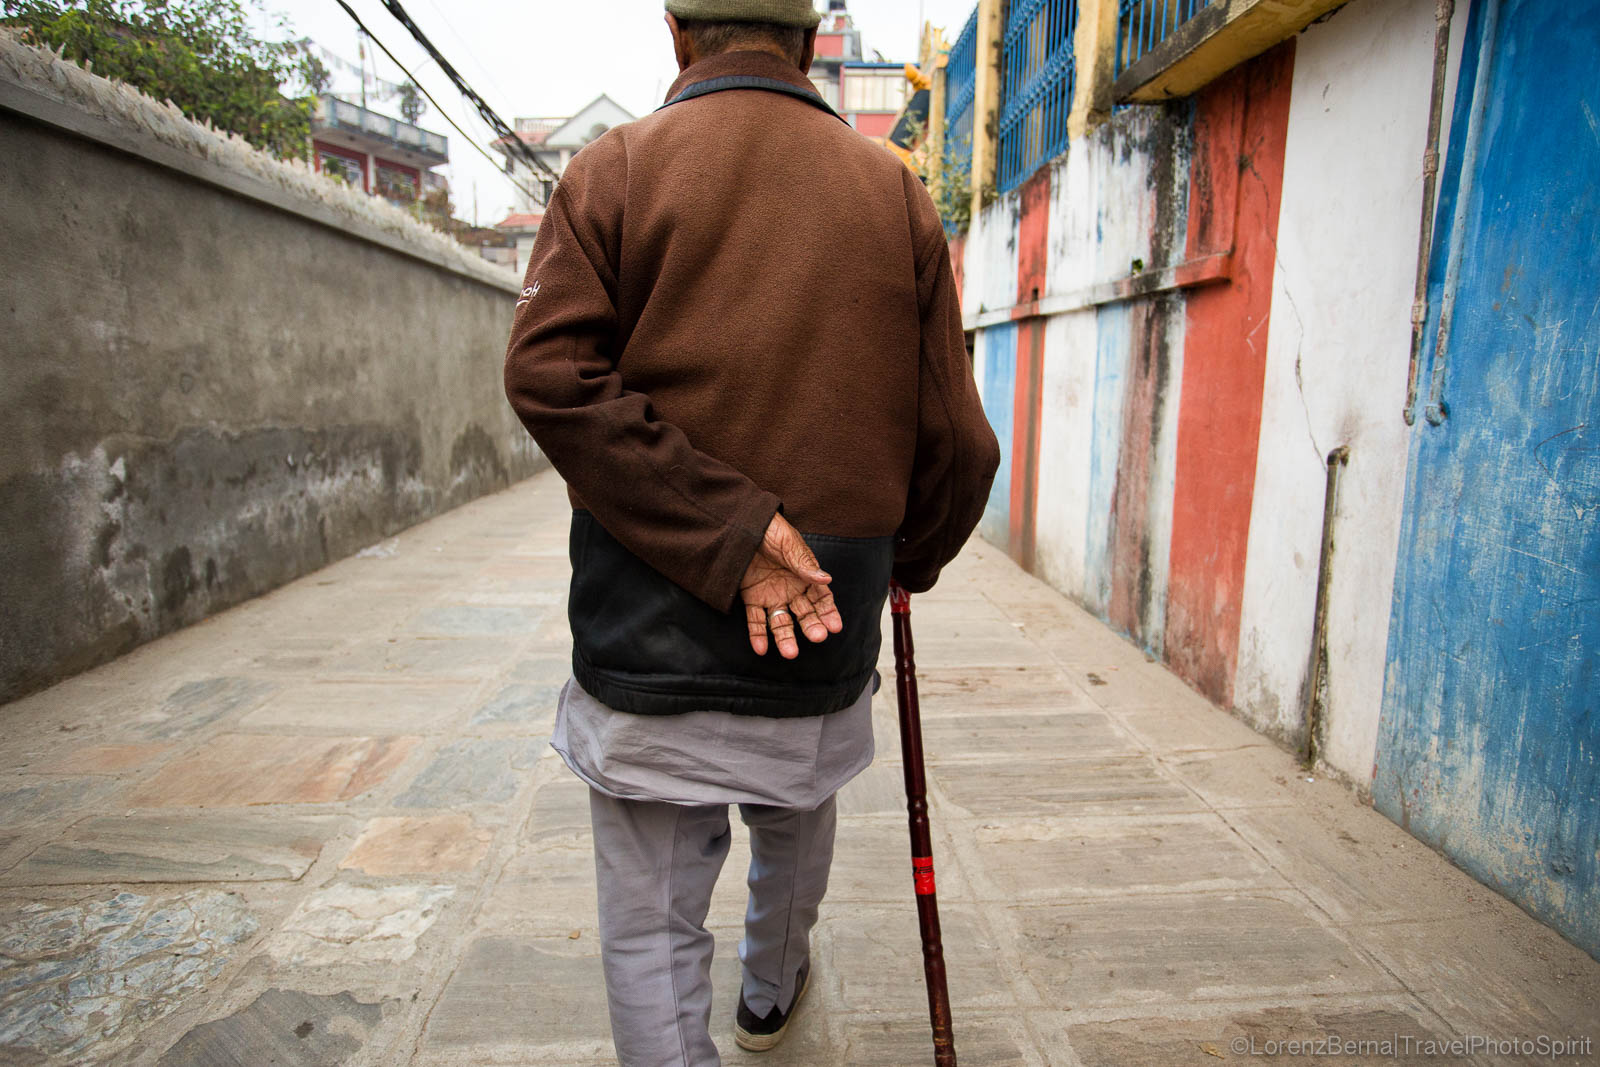 Street Photography in Kathmandu : the back of a local man is walking in a colourful street.